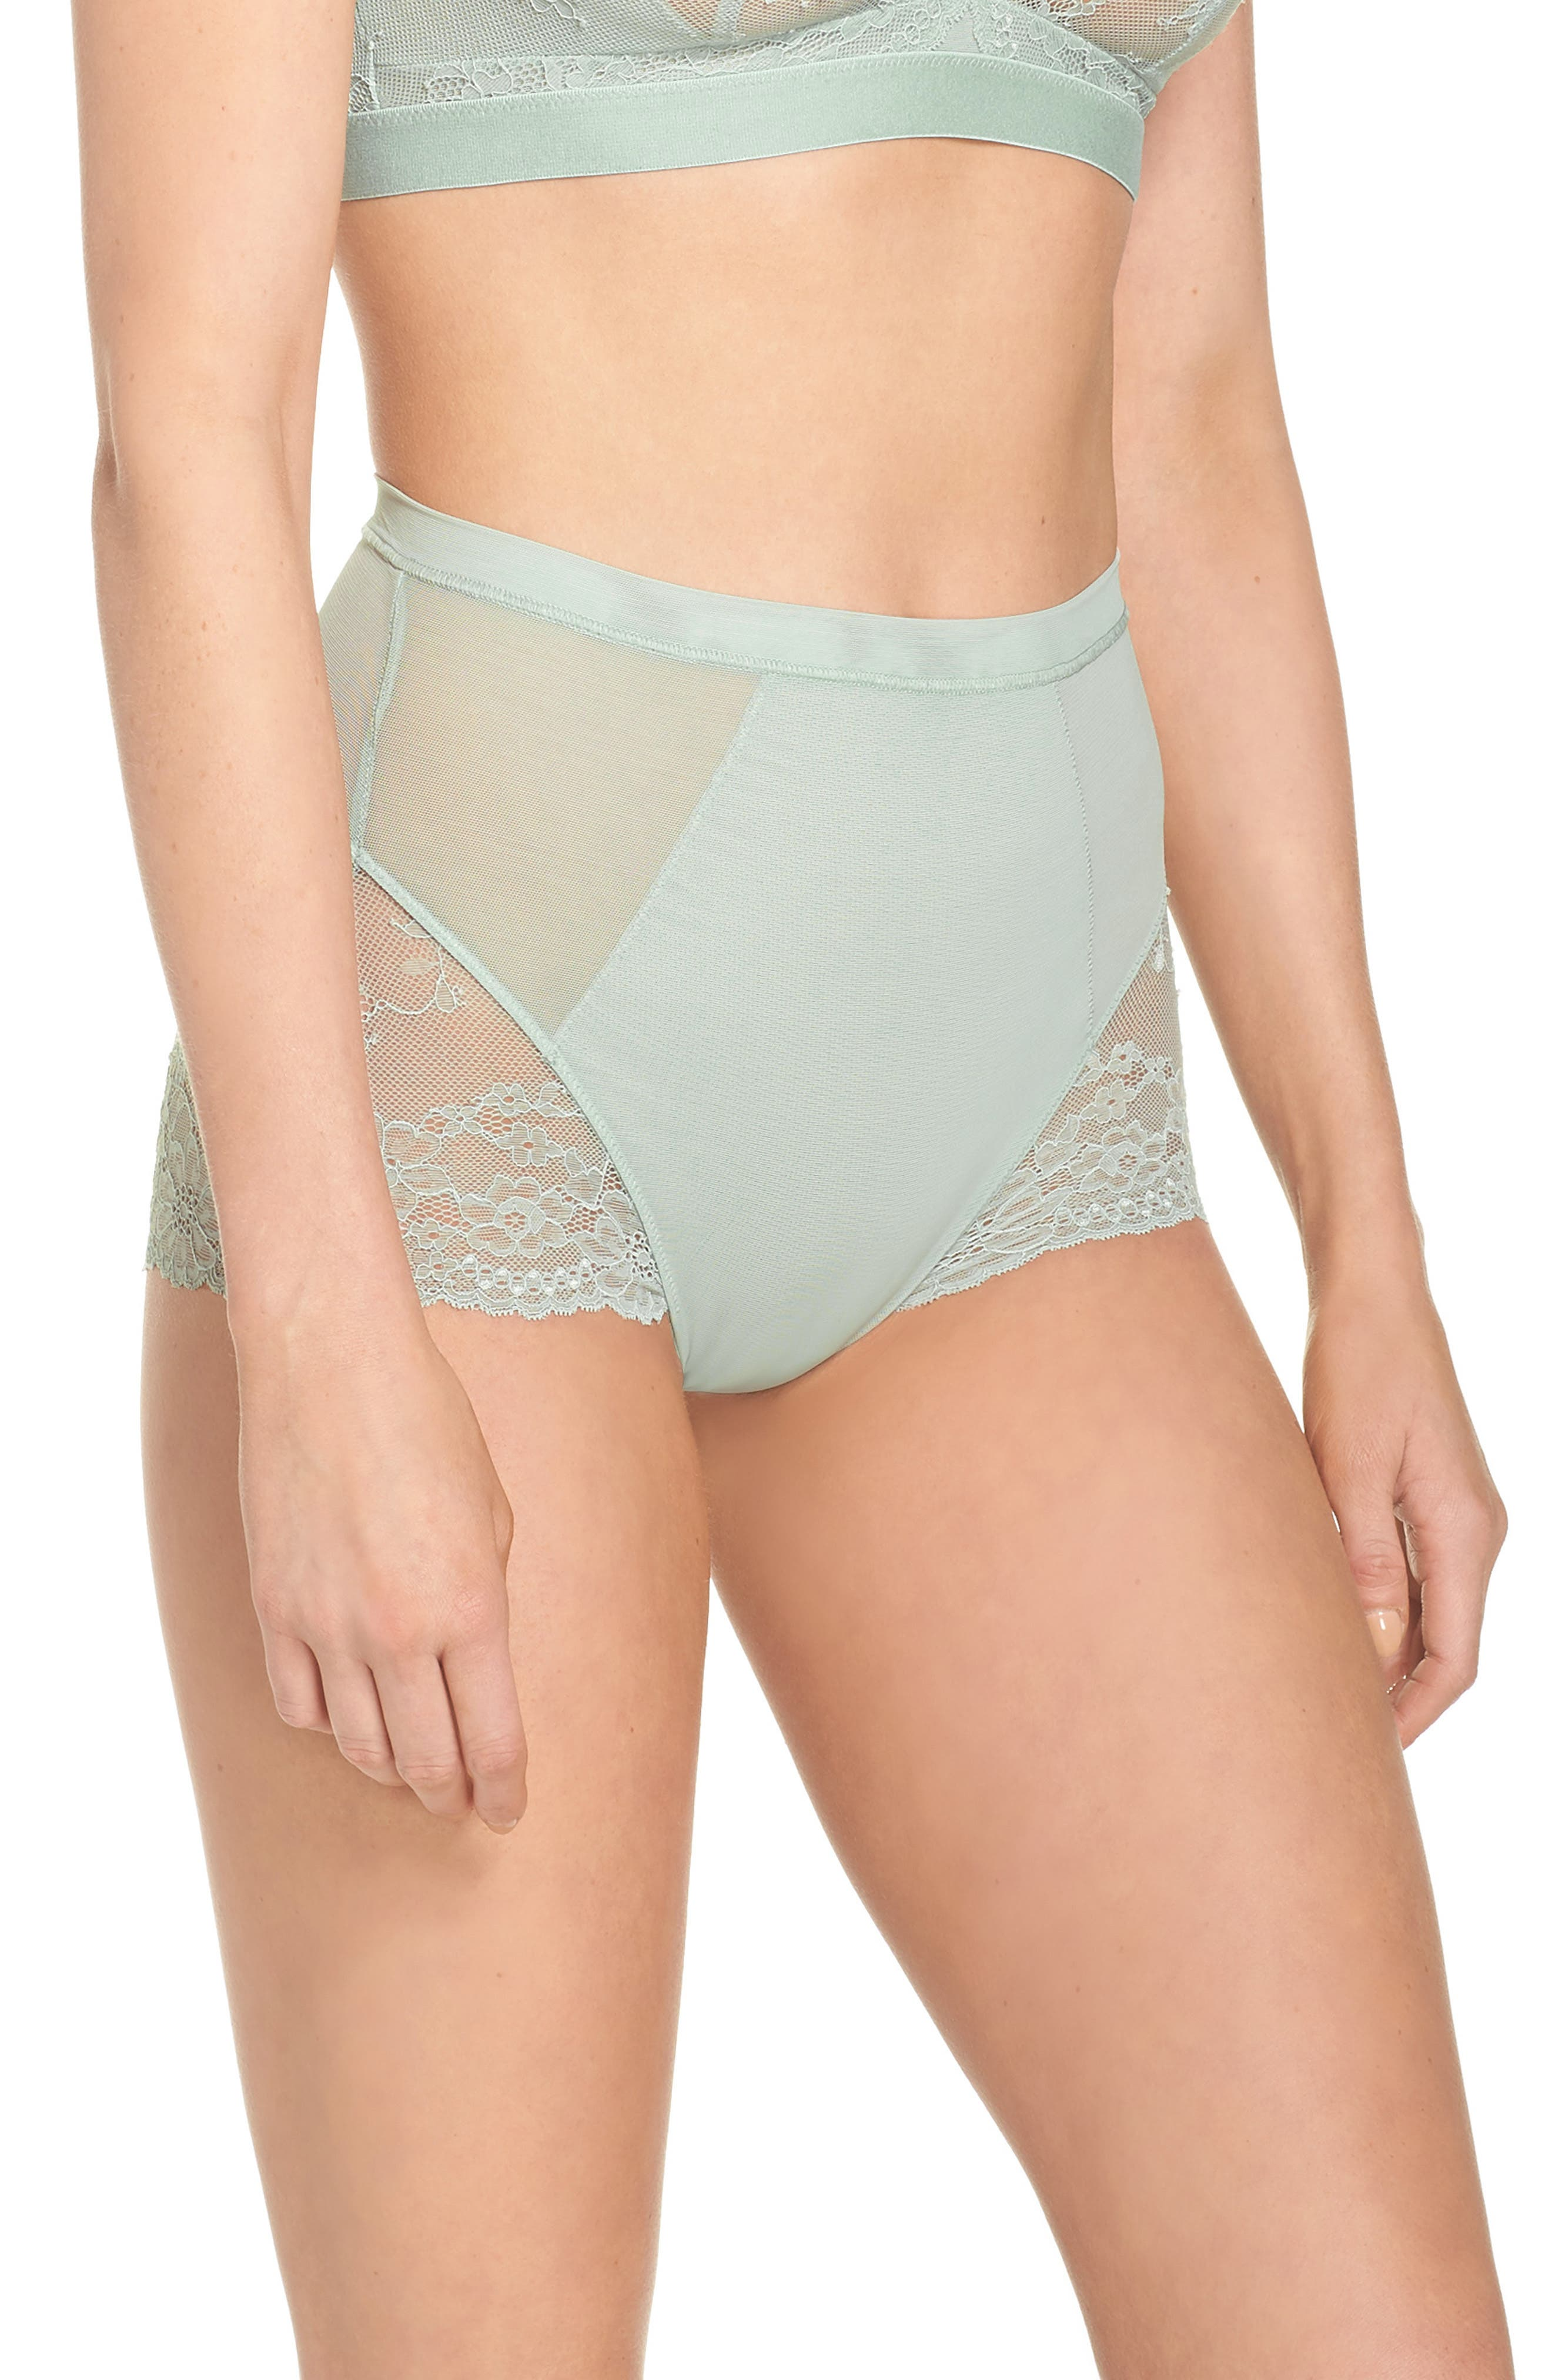 Spotlight On Lace Briefs,                             Alternate thumbnail 3, color,                             Seafoam Green